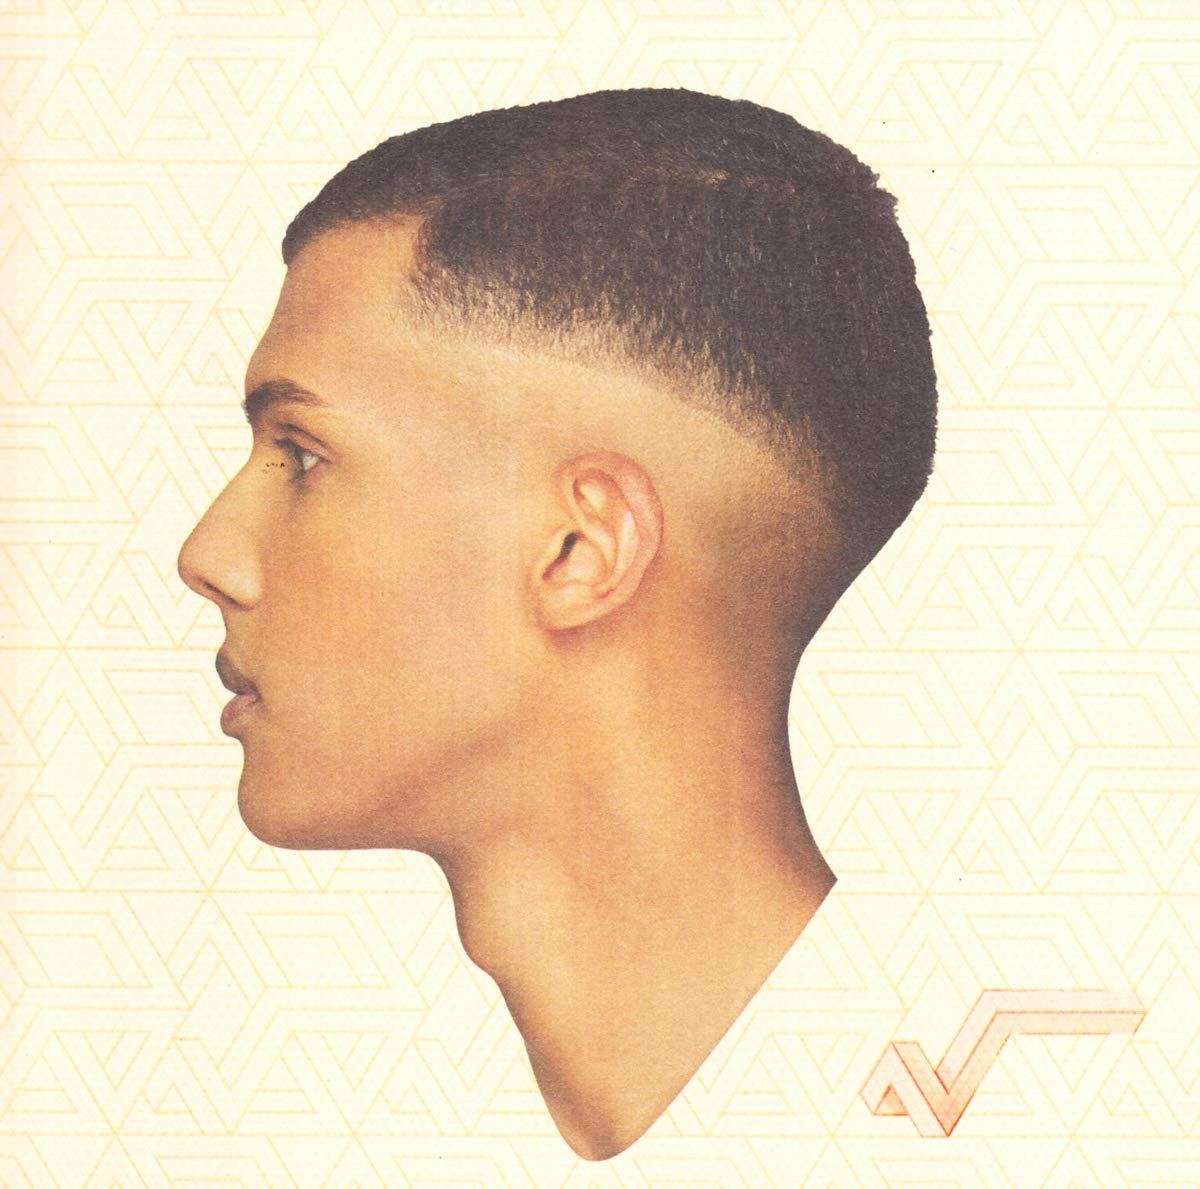 VIDEO GRATUIT TÉLÉCHARGER STROMAE PAPAOUTAI